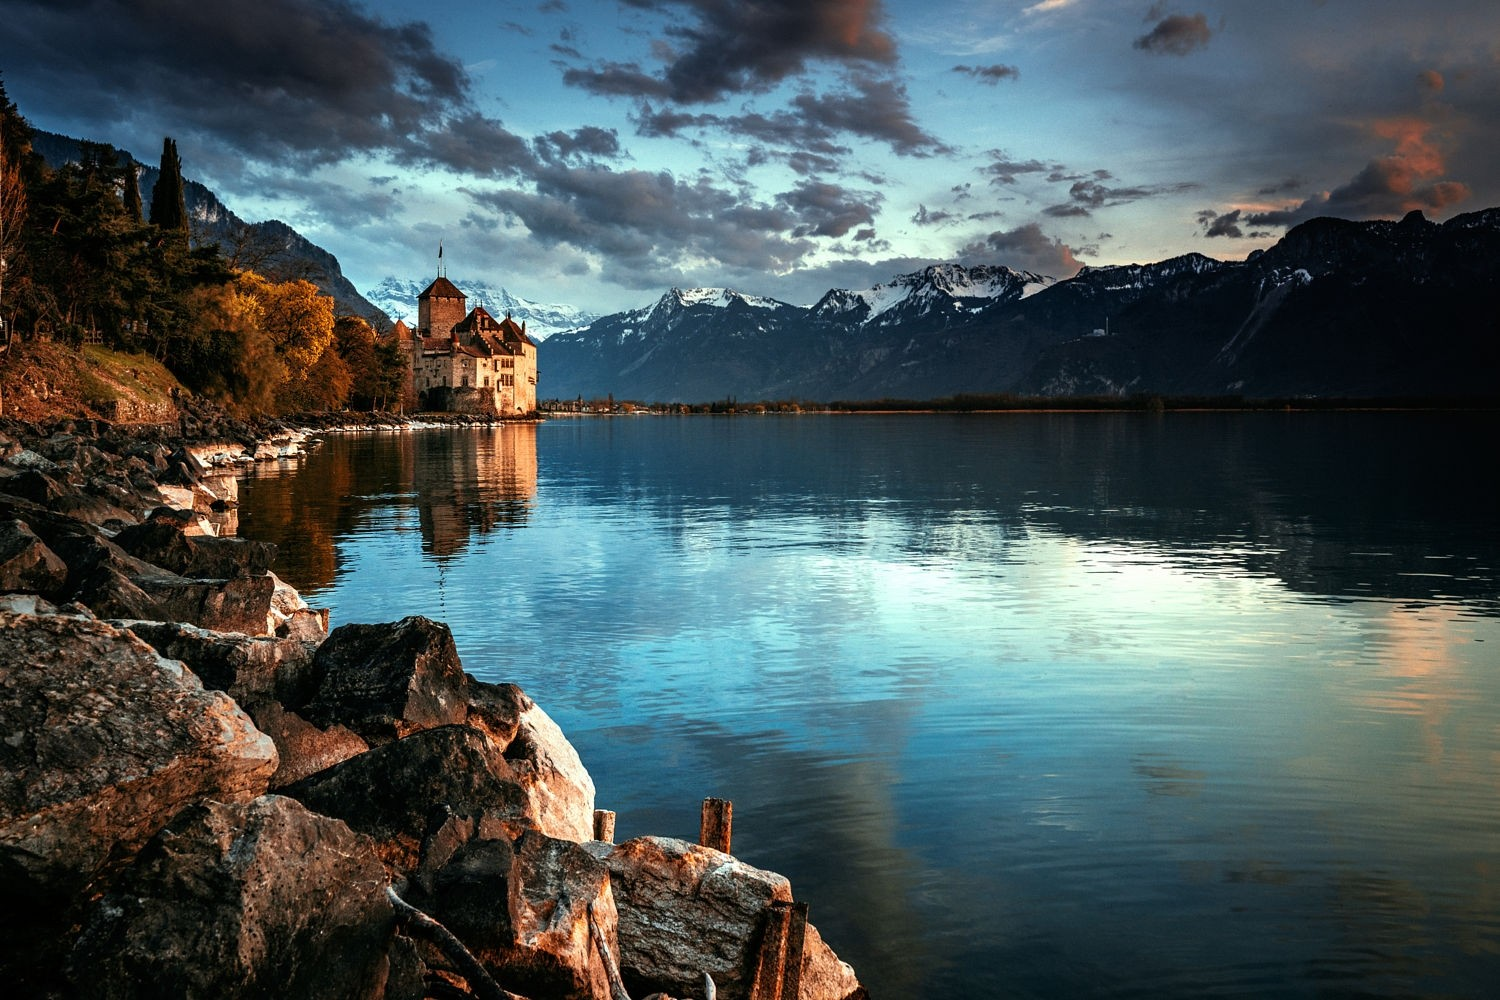 Castle on the lake in autumn